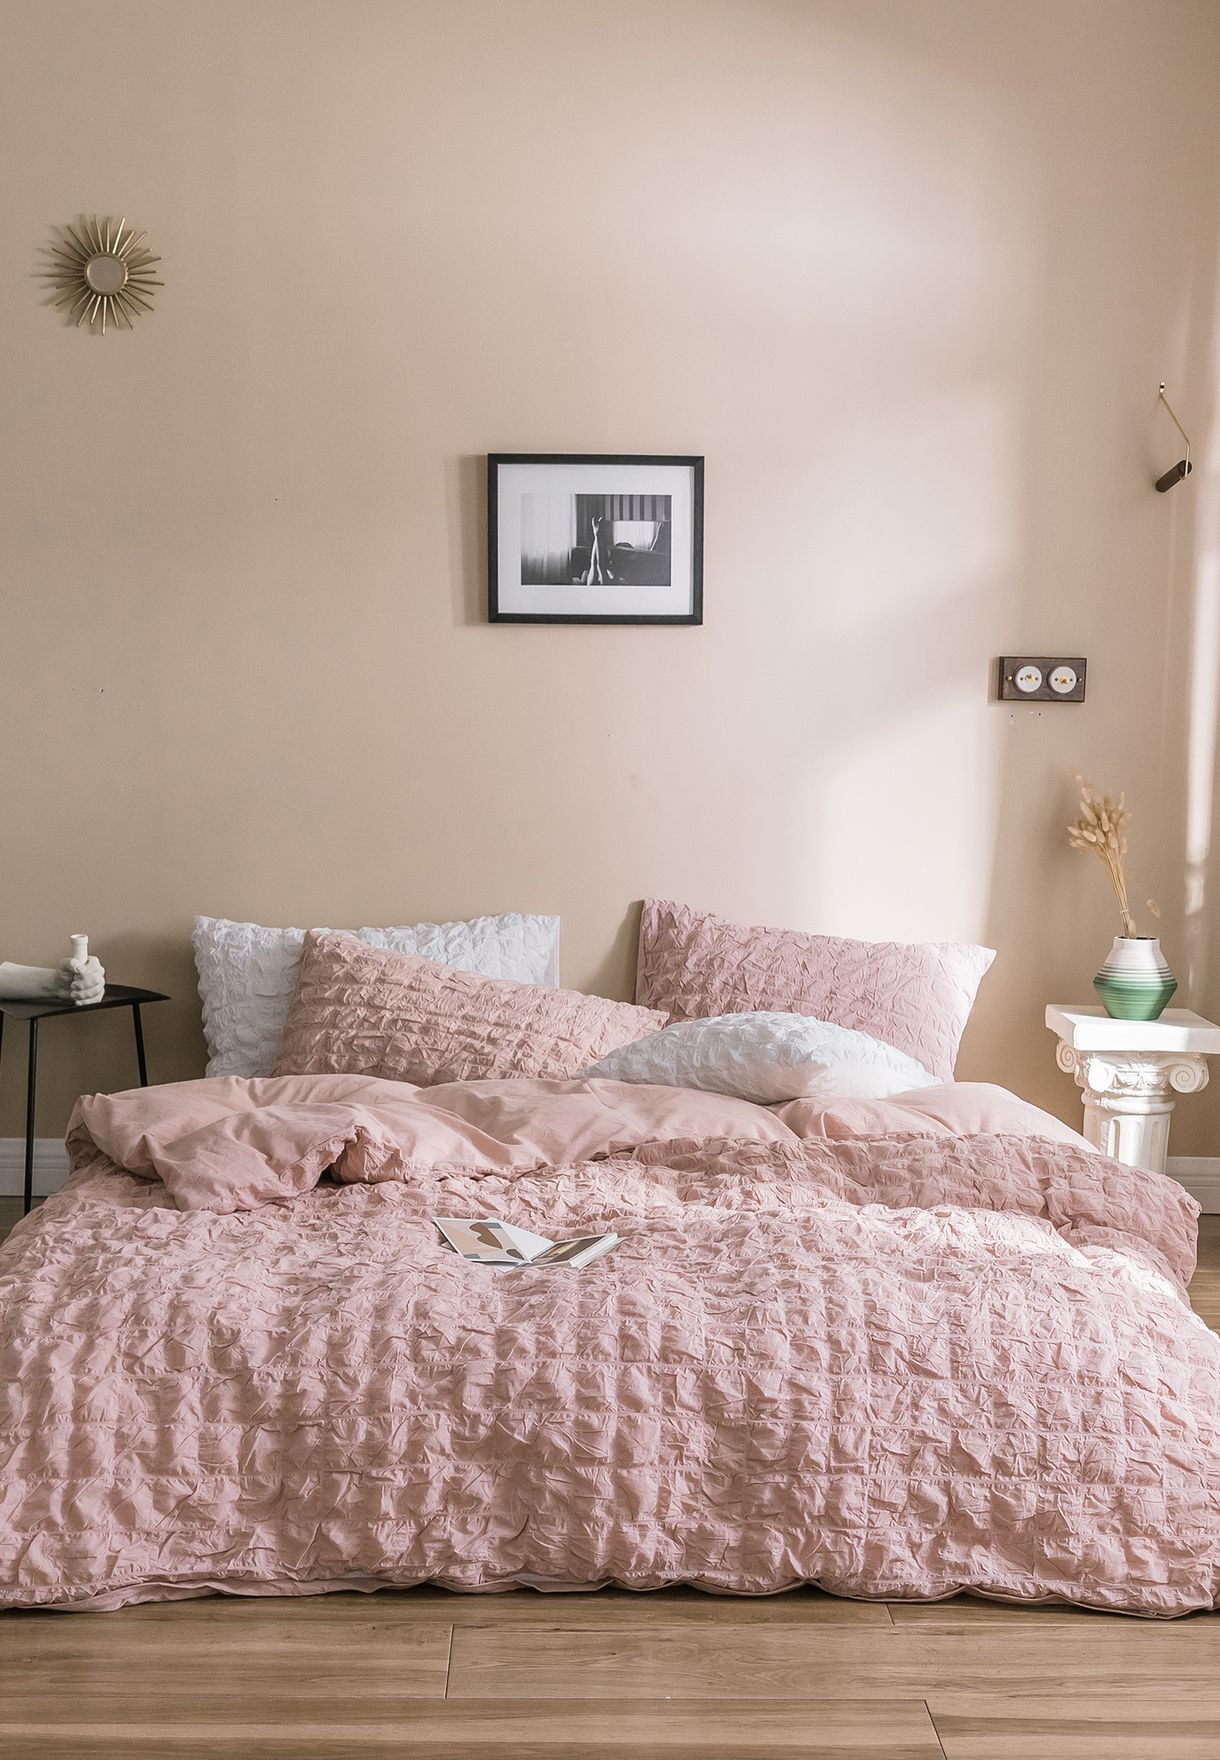 Quilted Bed Sheet Set - King 200 x 230cm